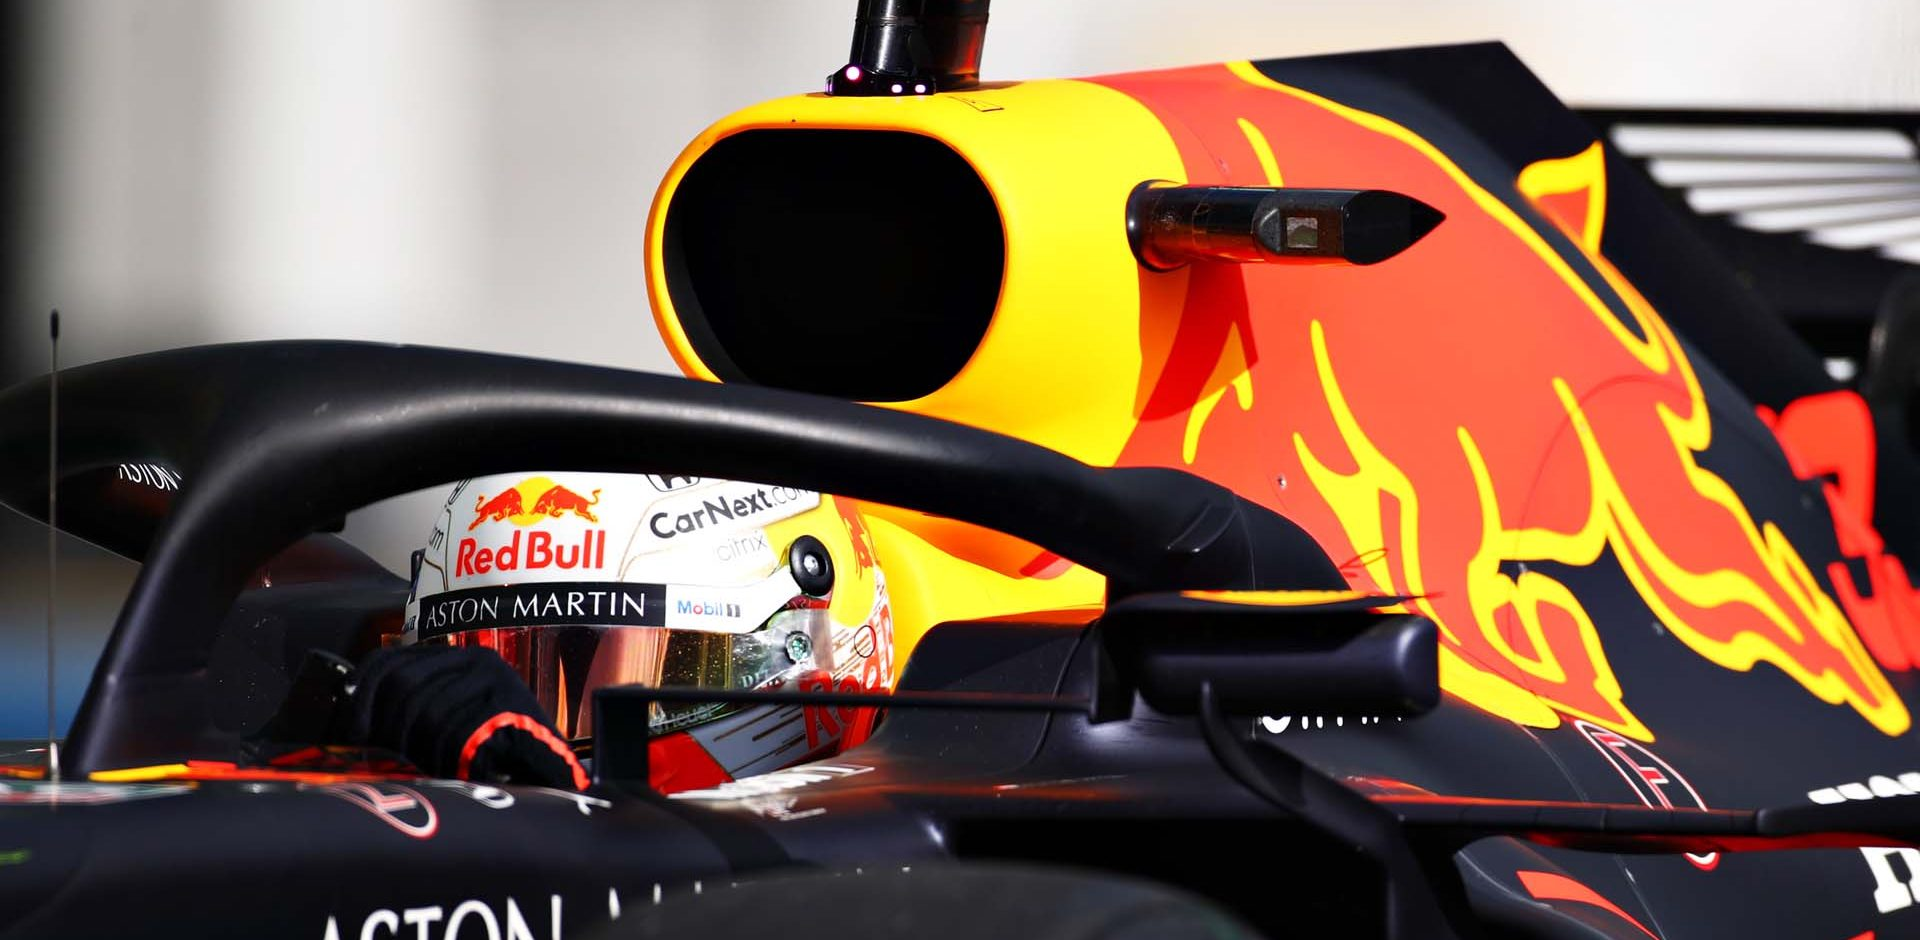 NUERBURG, GERMANY - OCTOBER 10: Max Verstappen of the Netherlands driving the (33) Aston Martin Red Bull Racing RB16 in the Pitlane during final practice ahead of the F1 Eifel Grand Prix at Nuerburgring on October 10, 2020 in Nuerburg, Germany. (Photo by Mark Thompson/Getty Images)